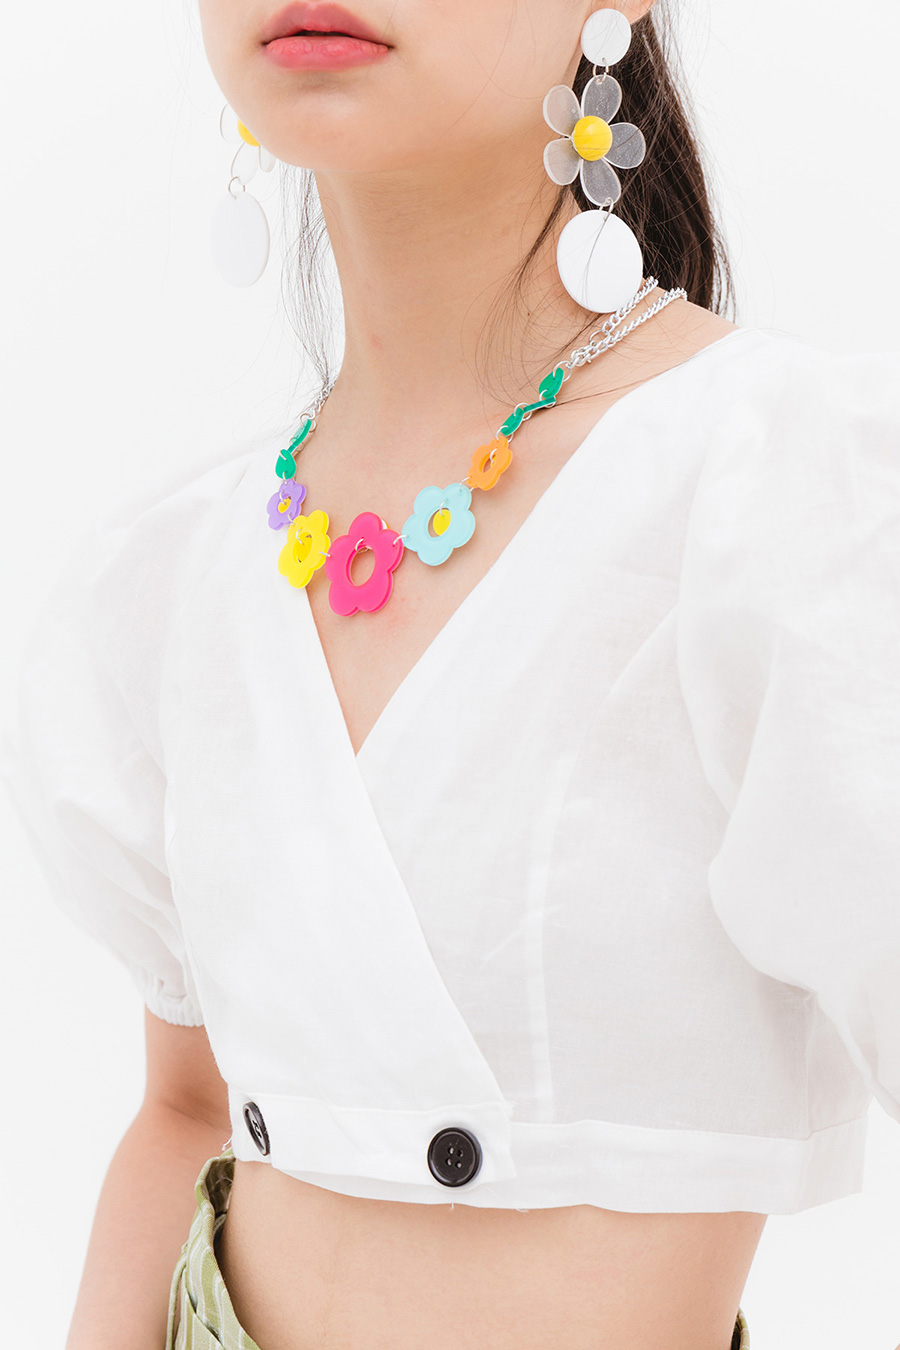 *BO* WHIMSY NECKLACE - GARLAND